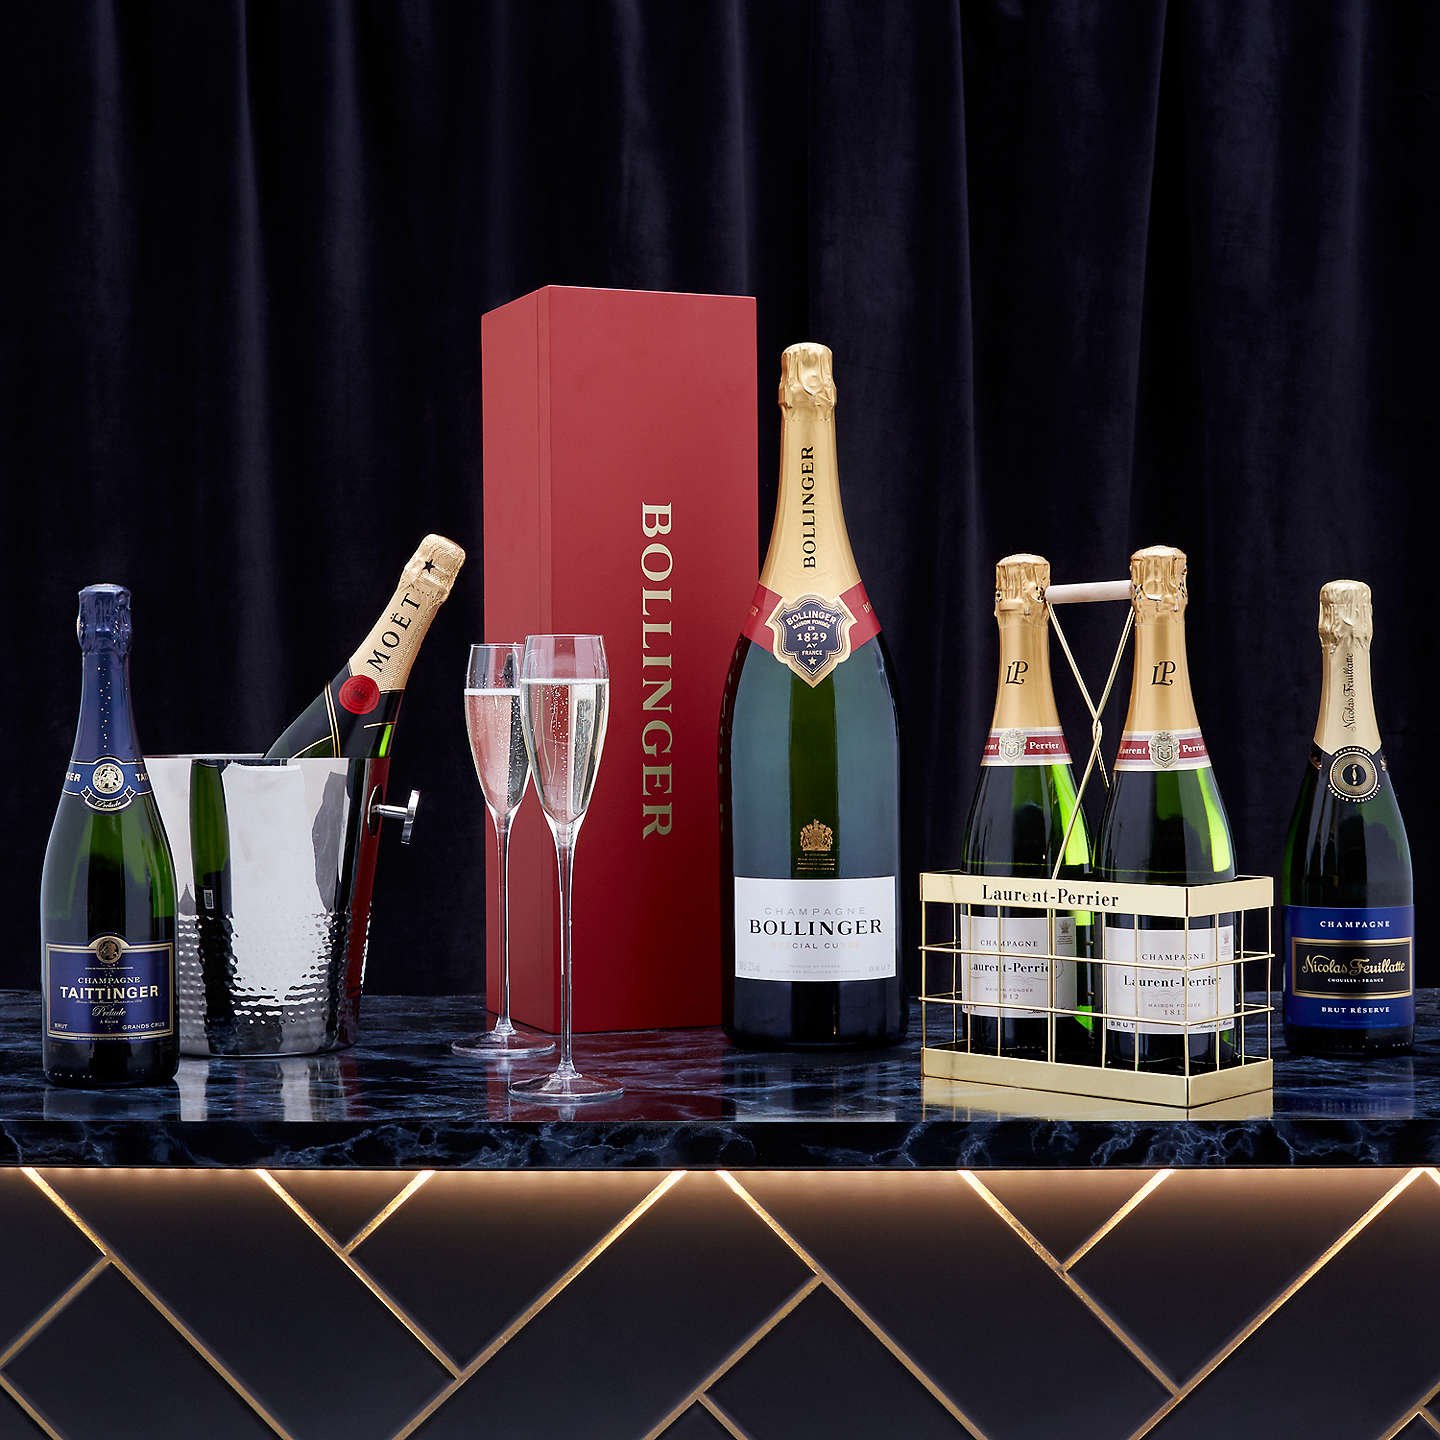 BuyTaittinger Prelude Grand Crus Champagne, 75cl Online at johnlewis.com